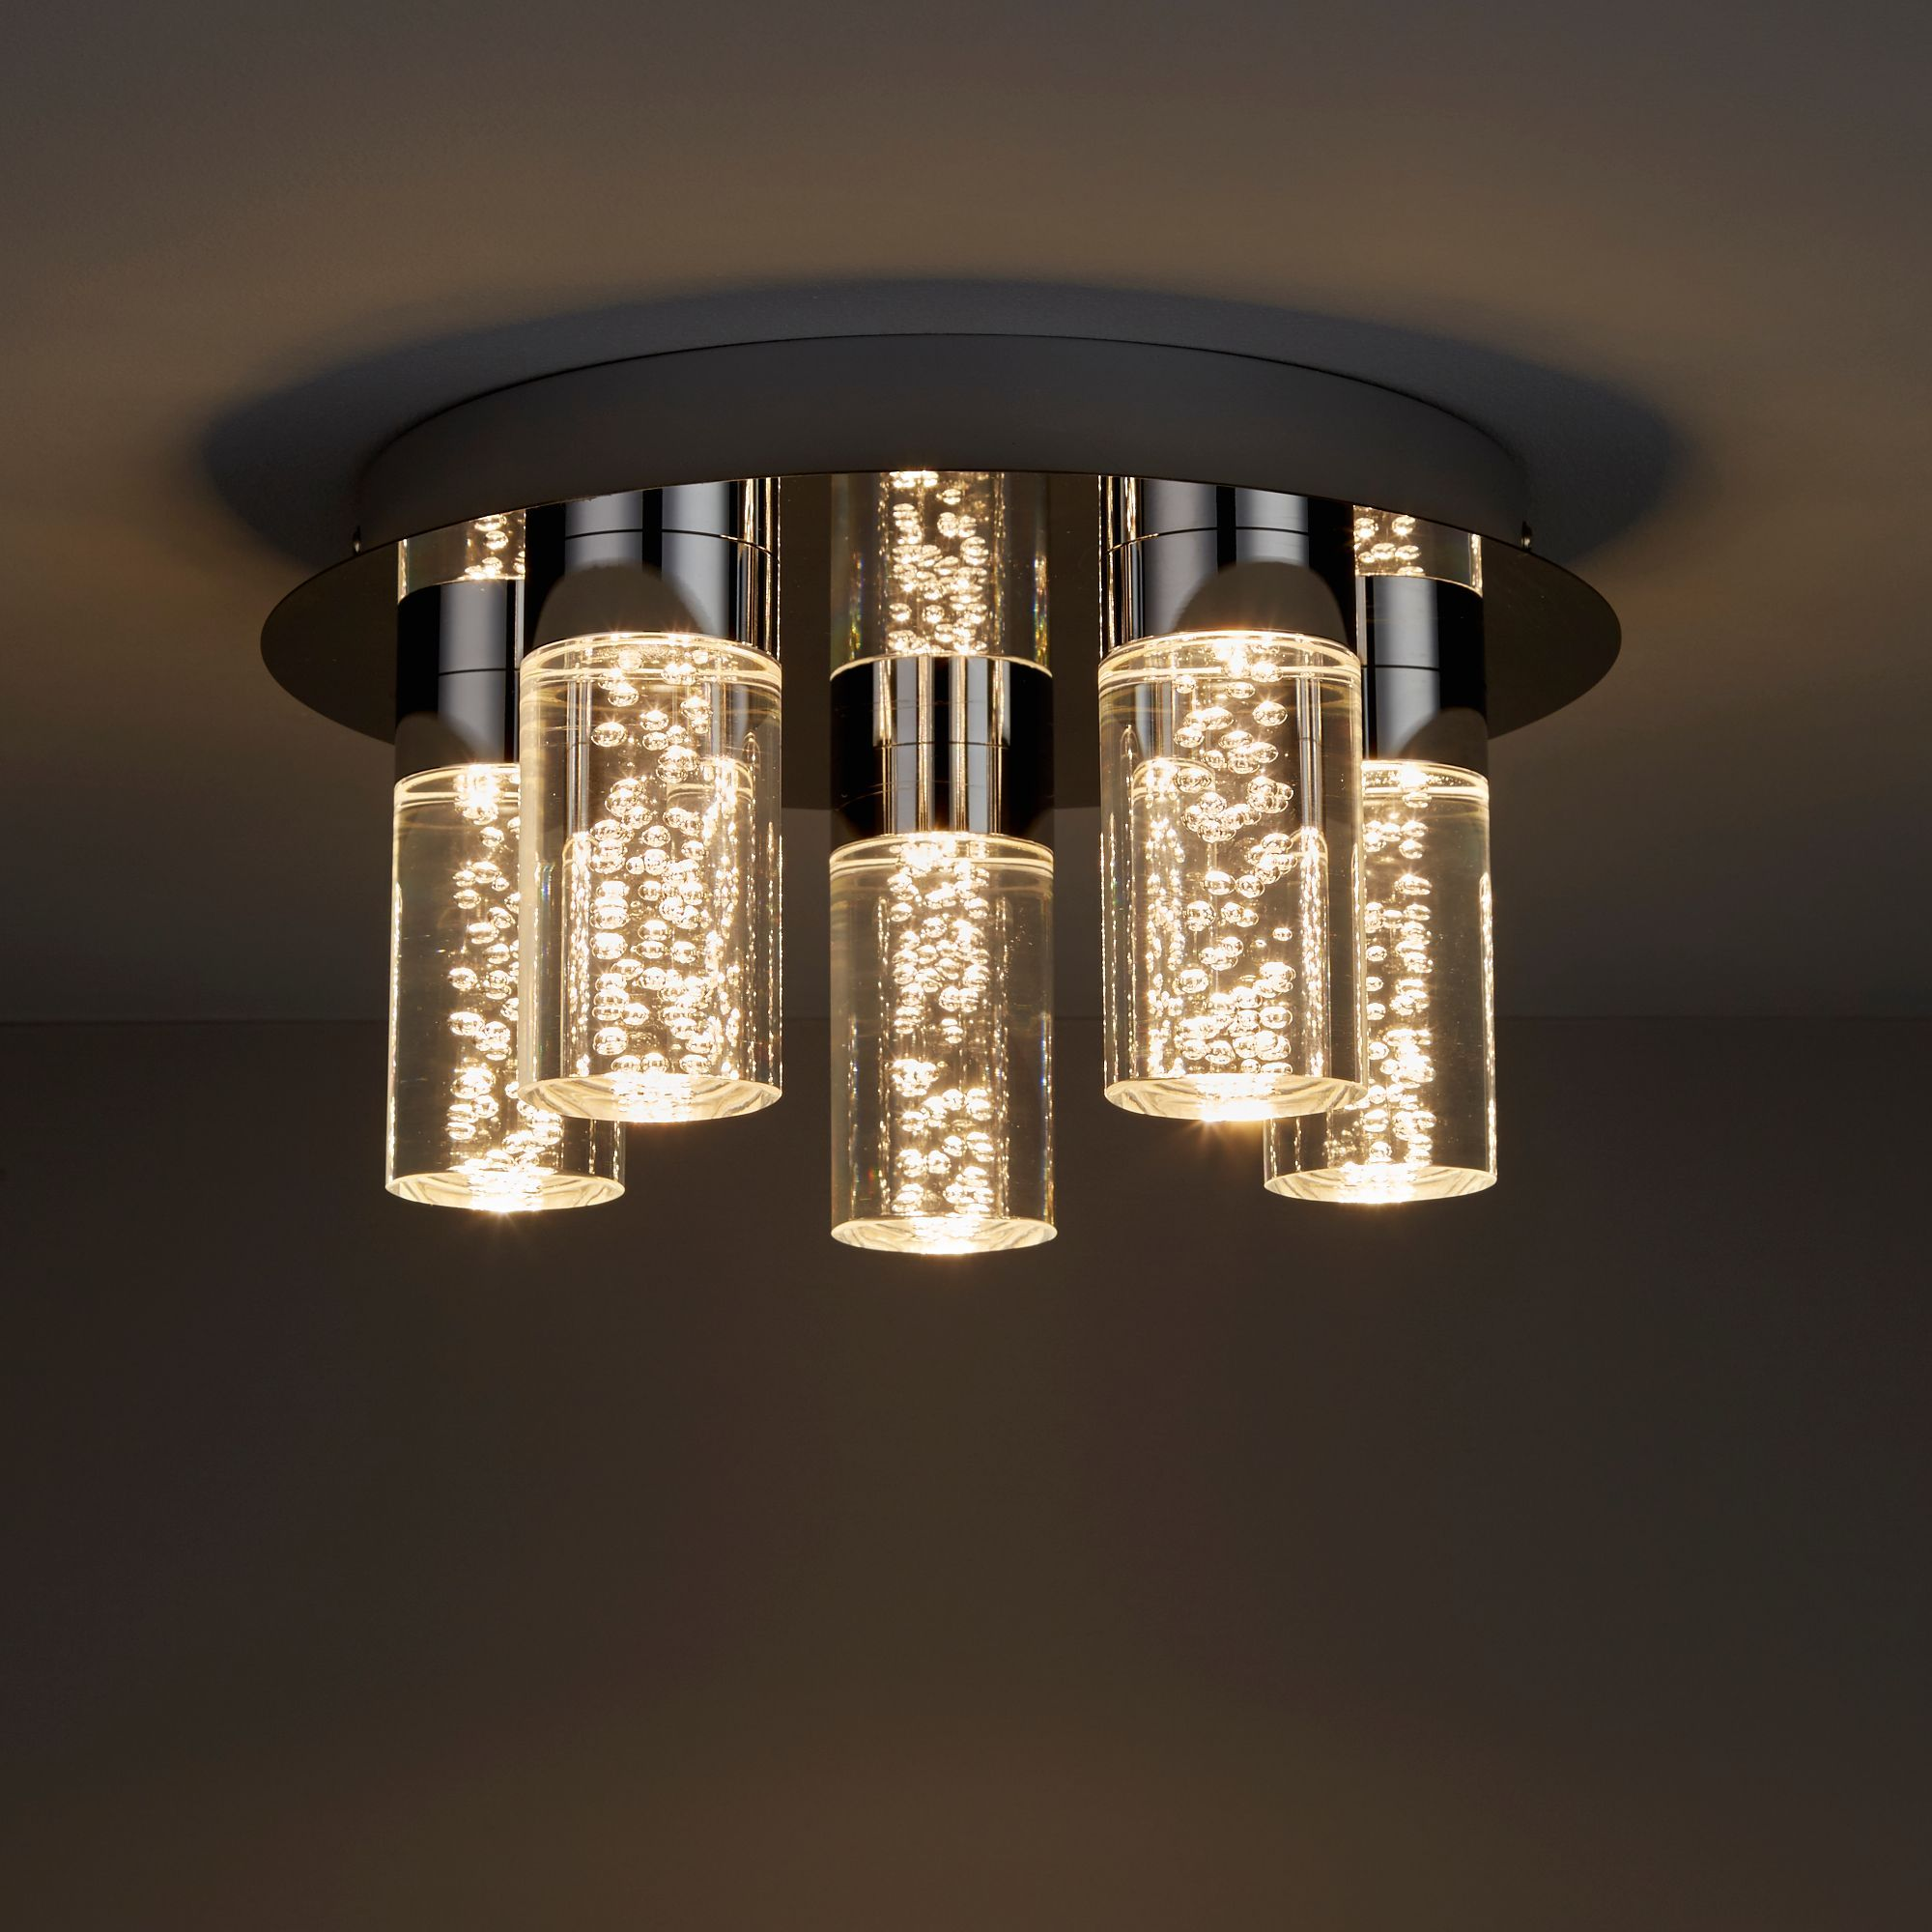 Hubble Chrome Effect 5 Lamp Bathroom Ceiling Light B Q For All Your Home And Garden Supplies And Adv Ceiling Lights Diy Ceiling Lights Bathroom Ceiling Light